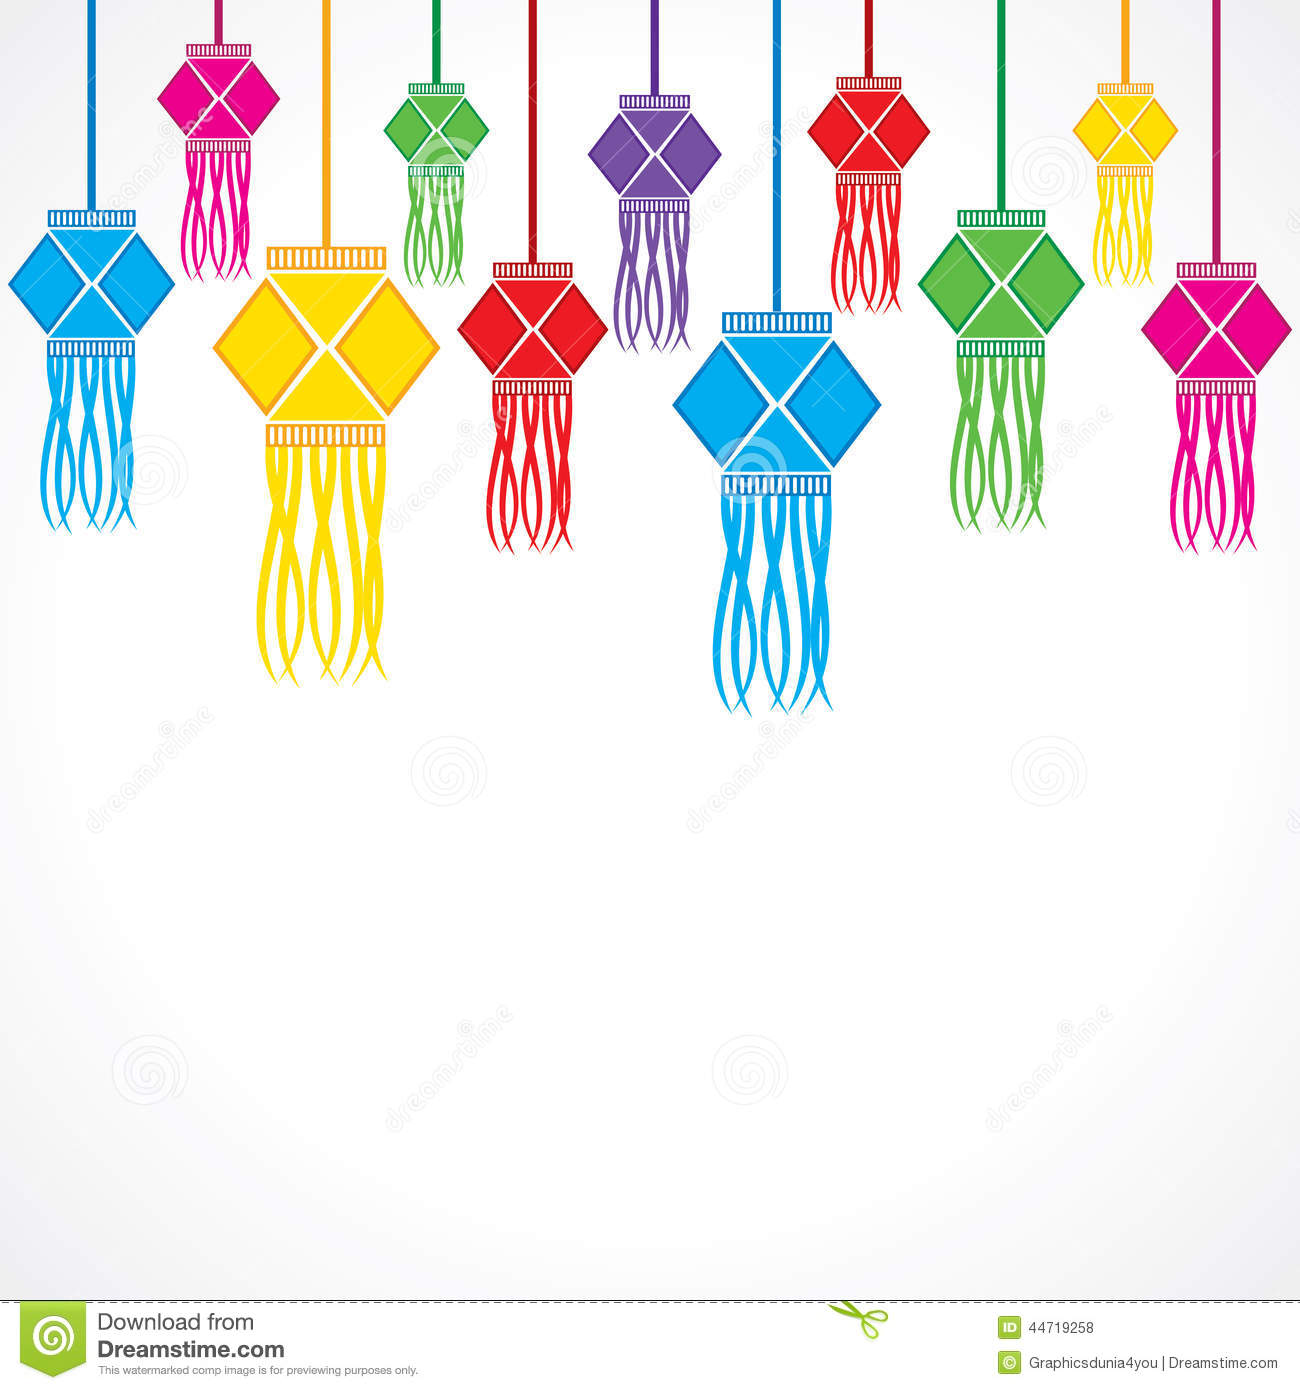 Diwali Greeting Background With Hanging Lamps Stock Vector